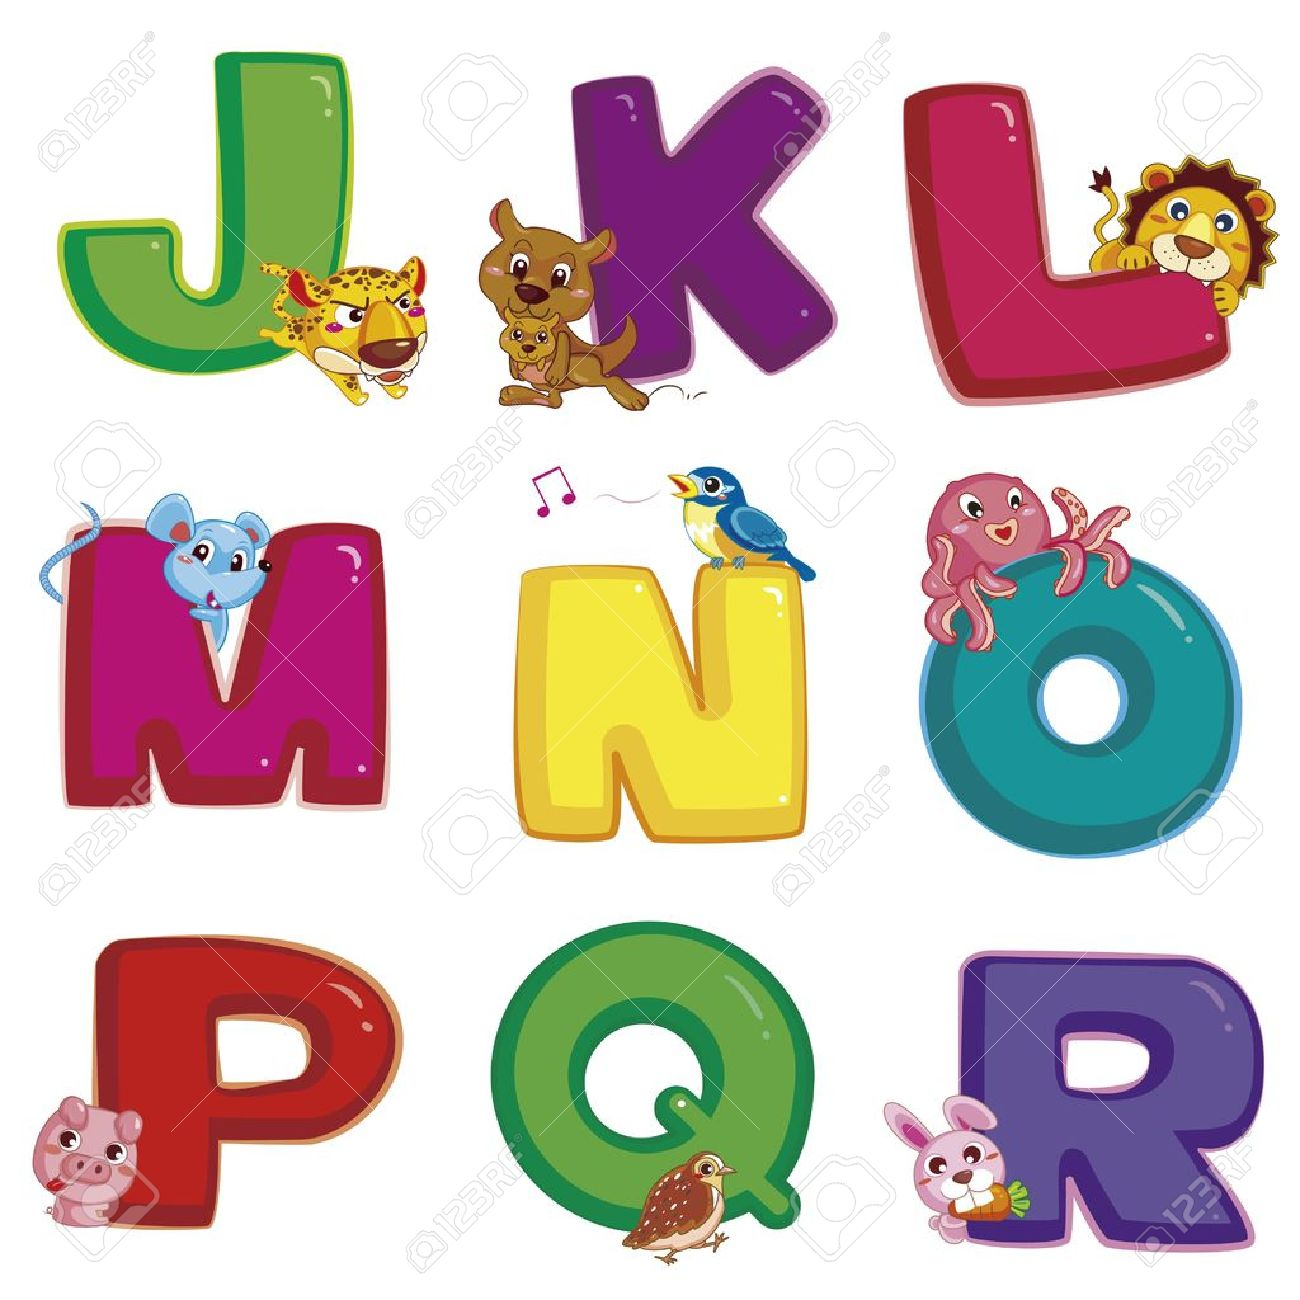 Free animal alphabet clipart picture library download Illustration Of Isolated Animal Alphabet J To R On White Royalty ... picture library download